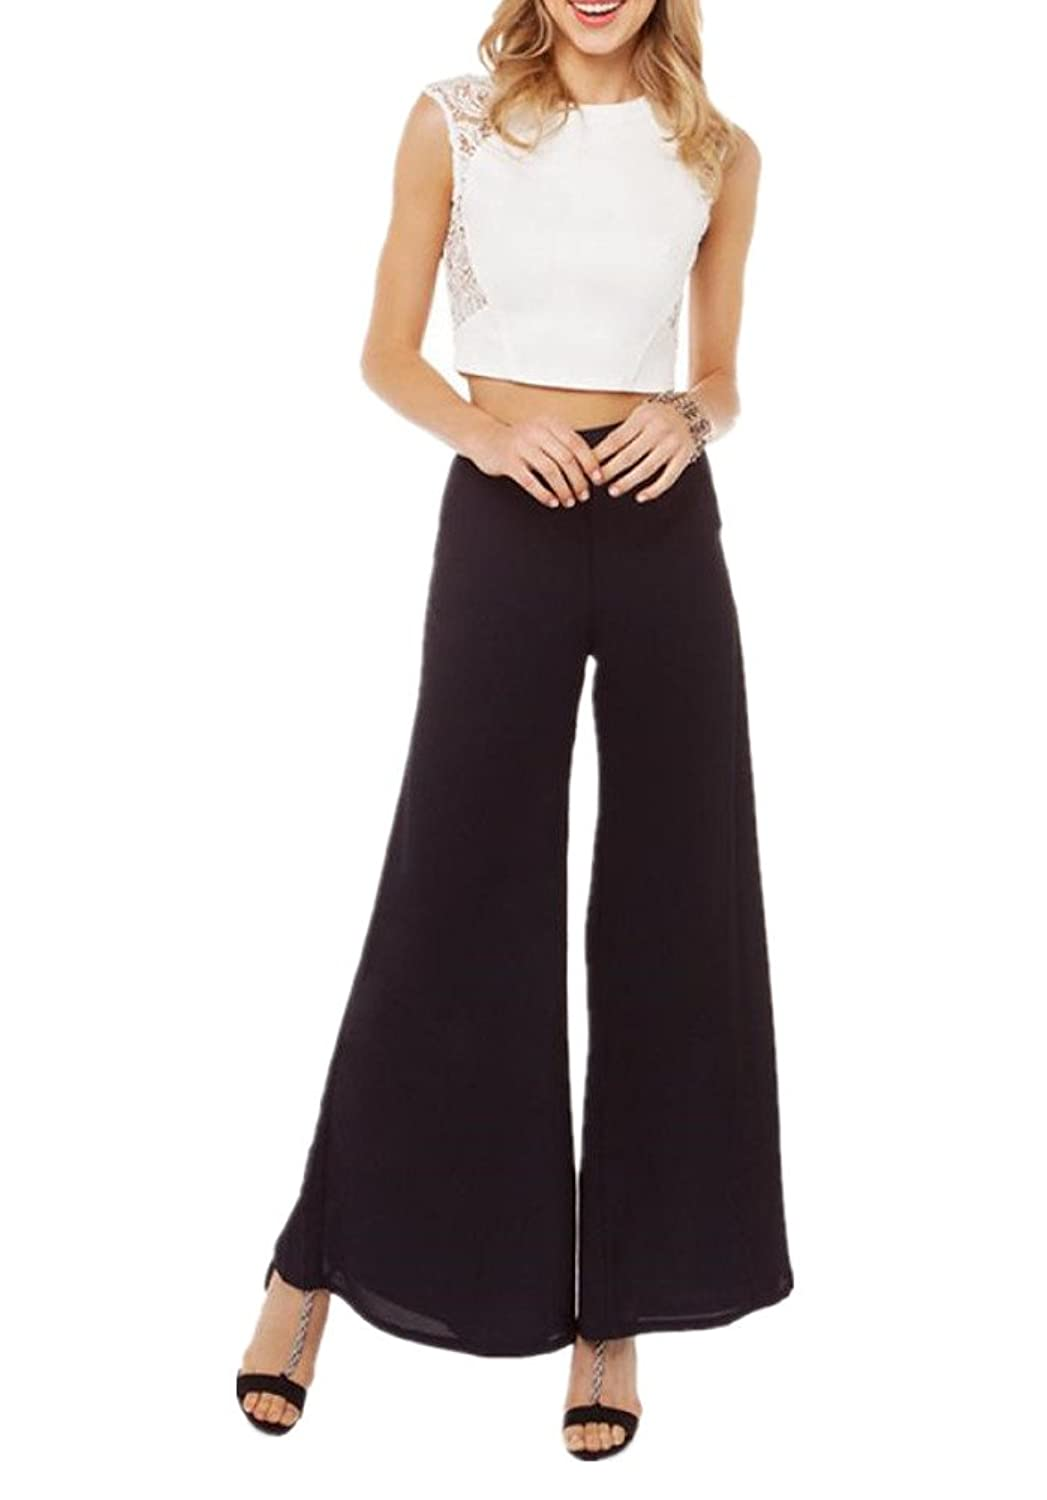 Enlishop Women's Black Chiffon Pleated High Waist Wide Leg Long Palazzo Pants